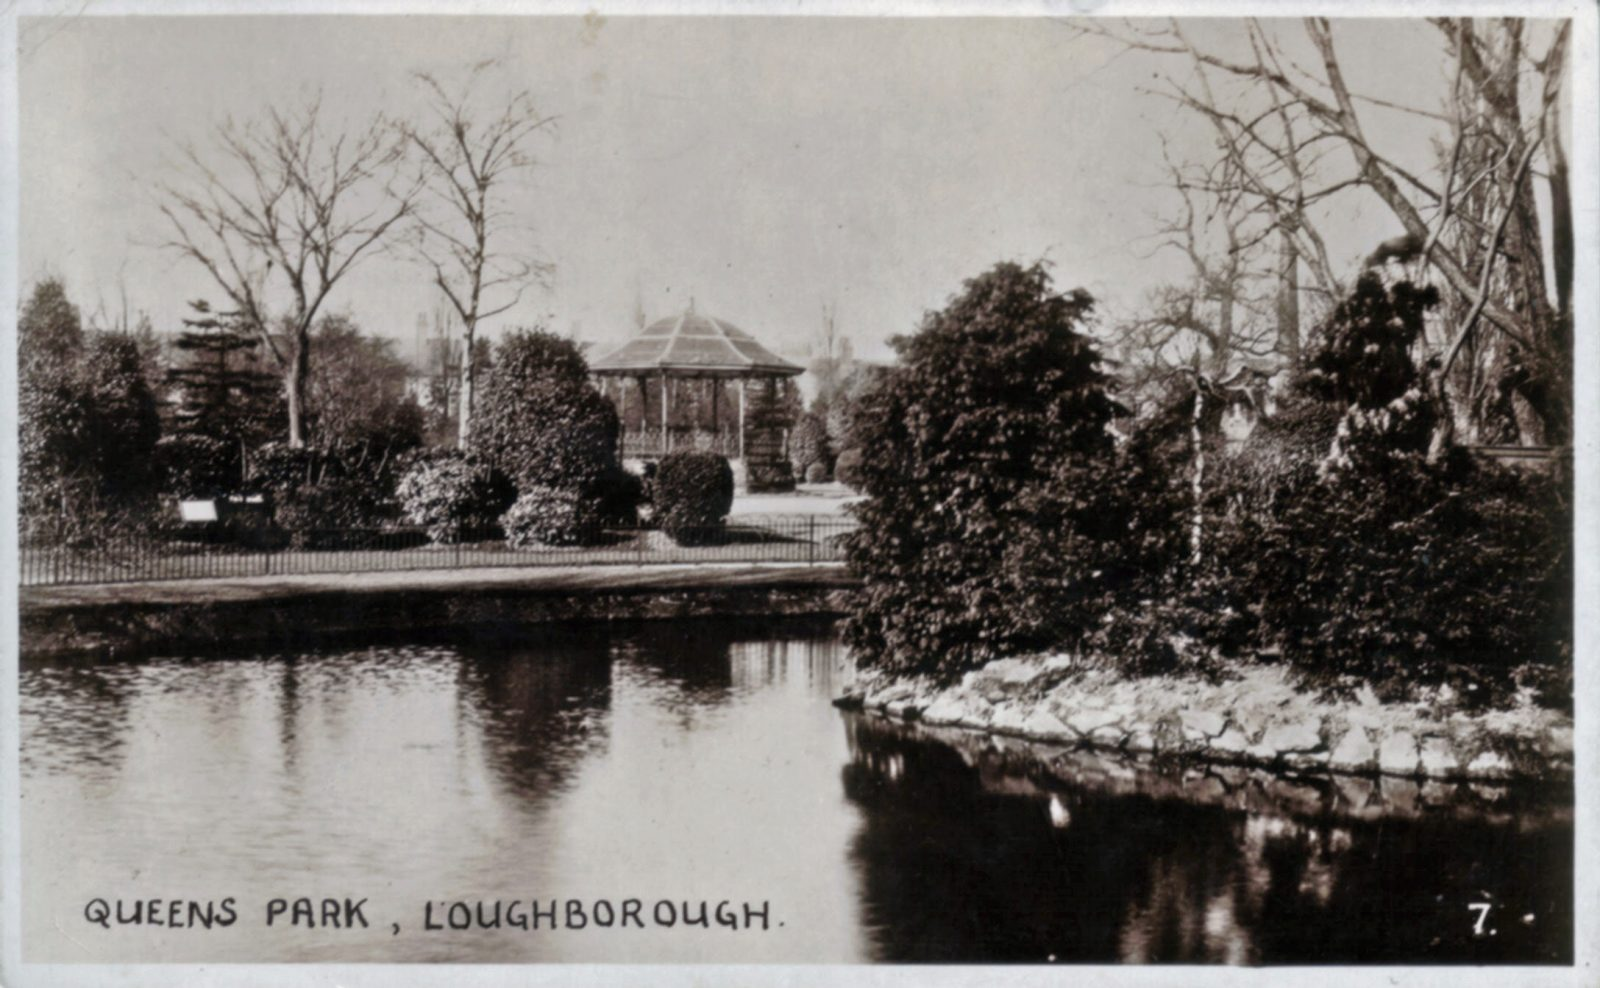 Queens Park, Loughborough. 1941-1960: The Lake with bandstand in the background. Franked 1947 (File:1137)